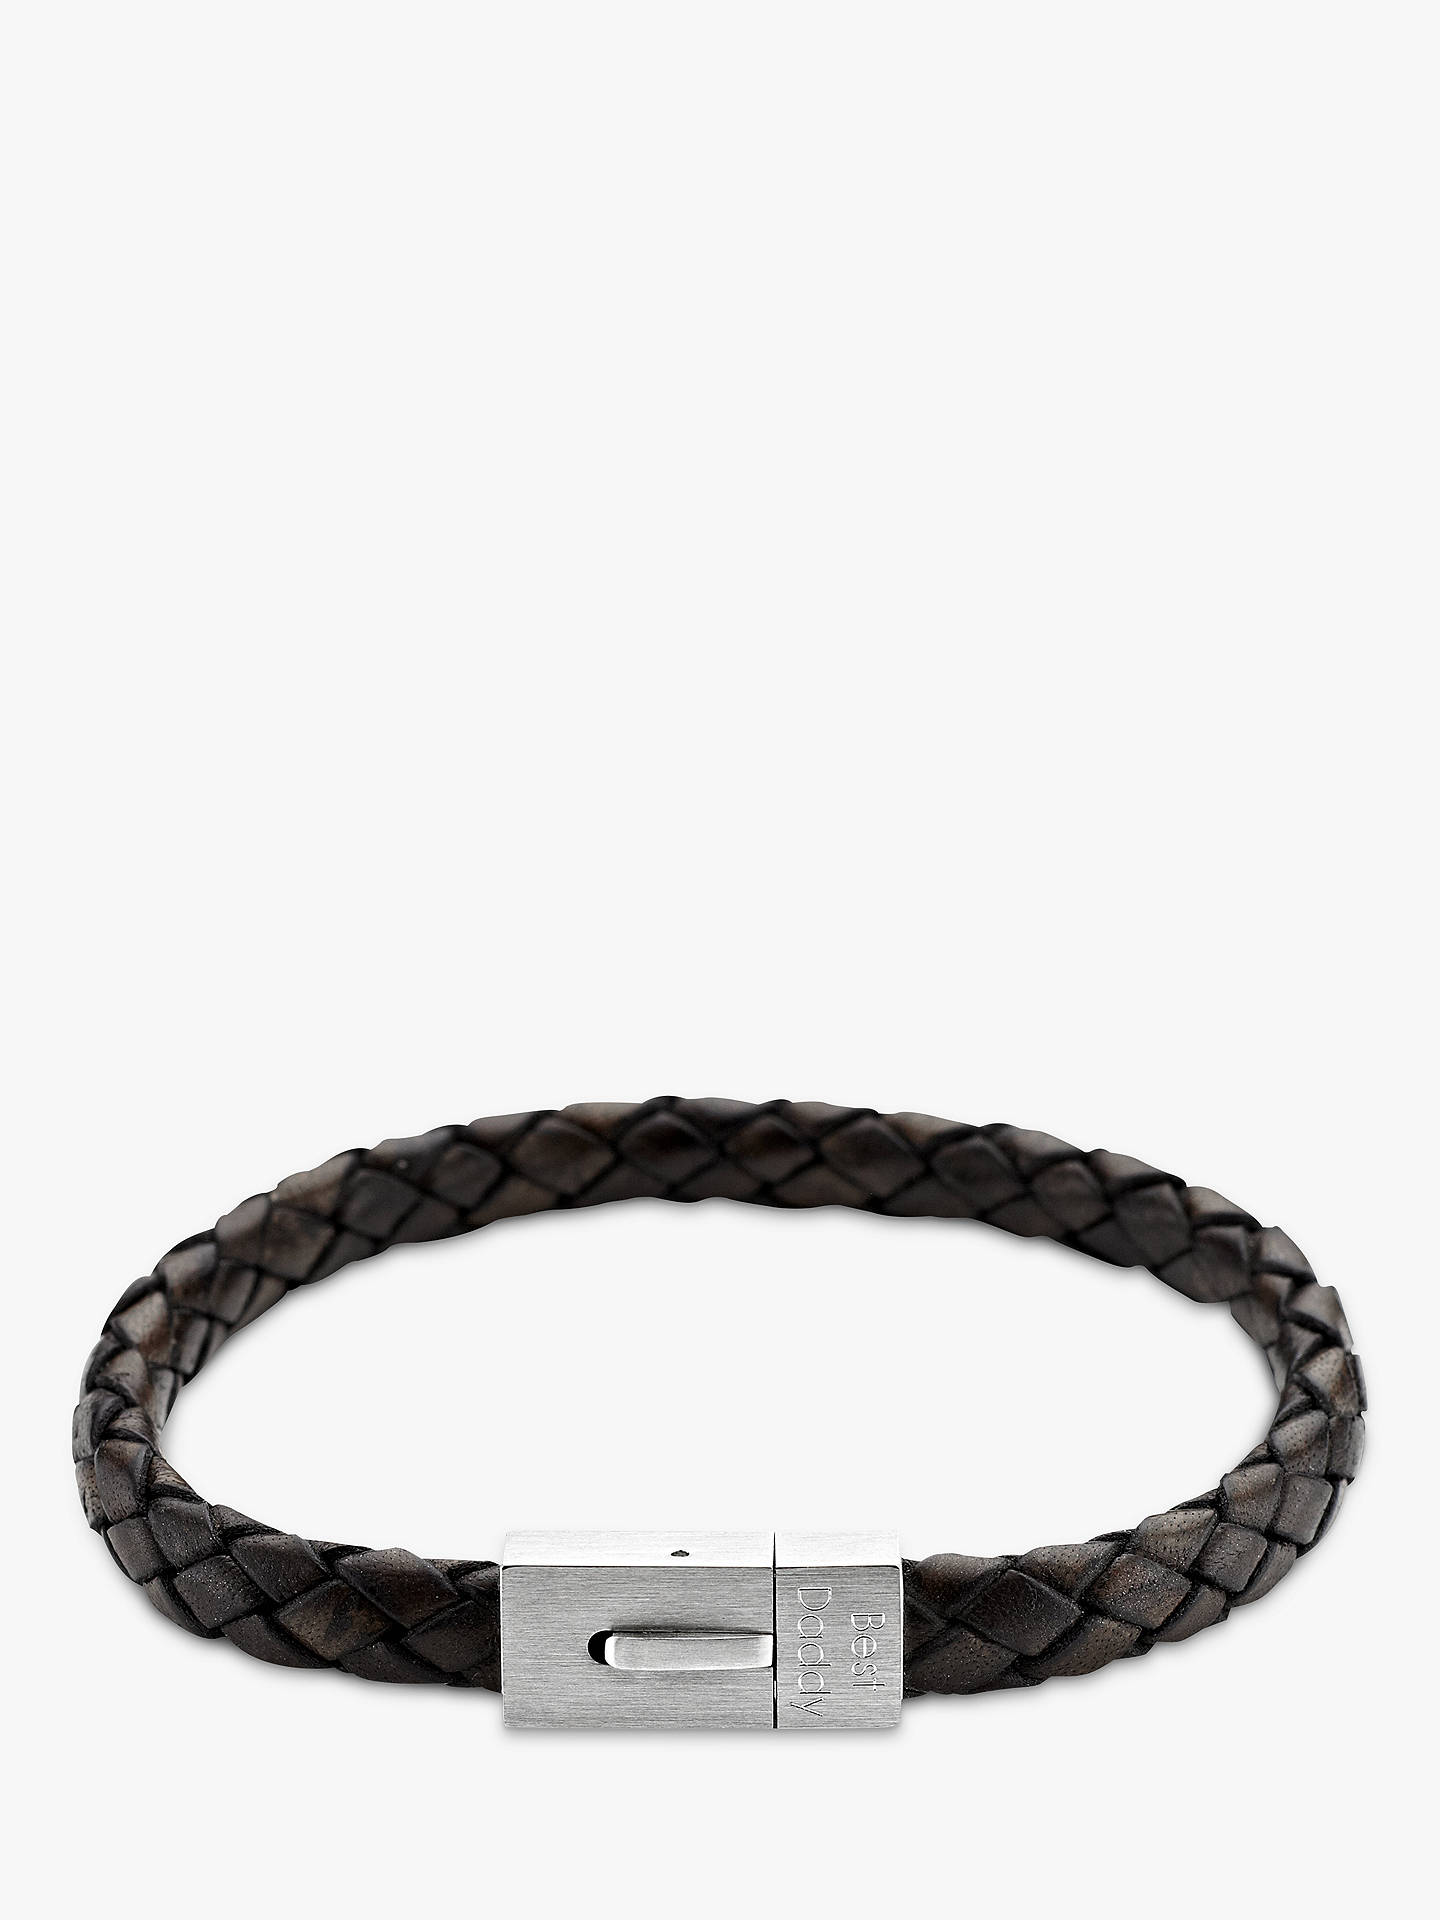 Under The Rose Personalised Men S Leather Bracelet 22cm Online At Johnlewis